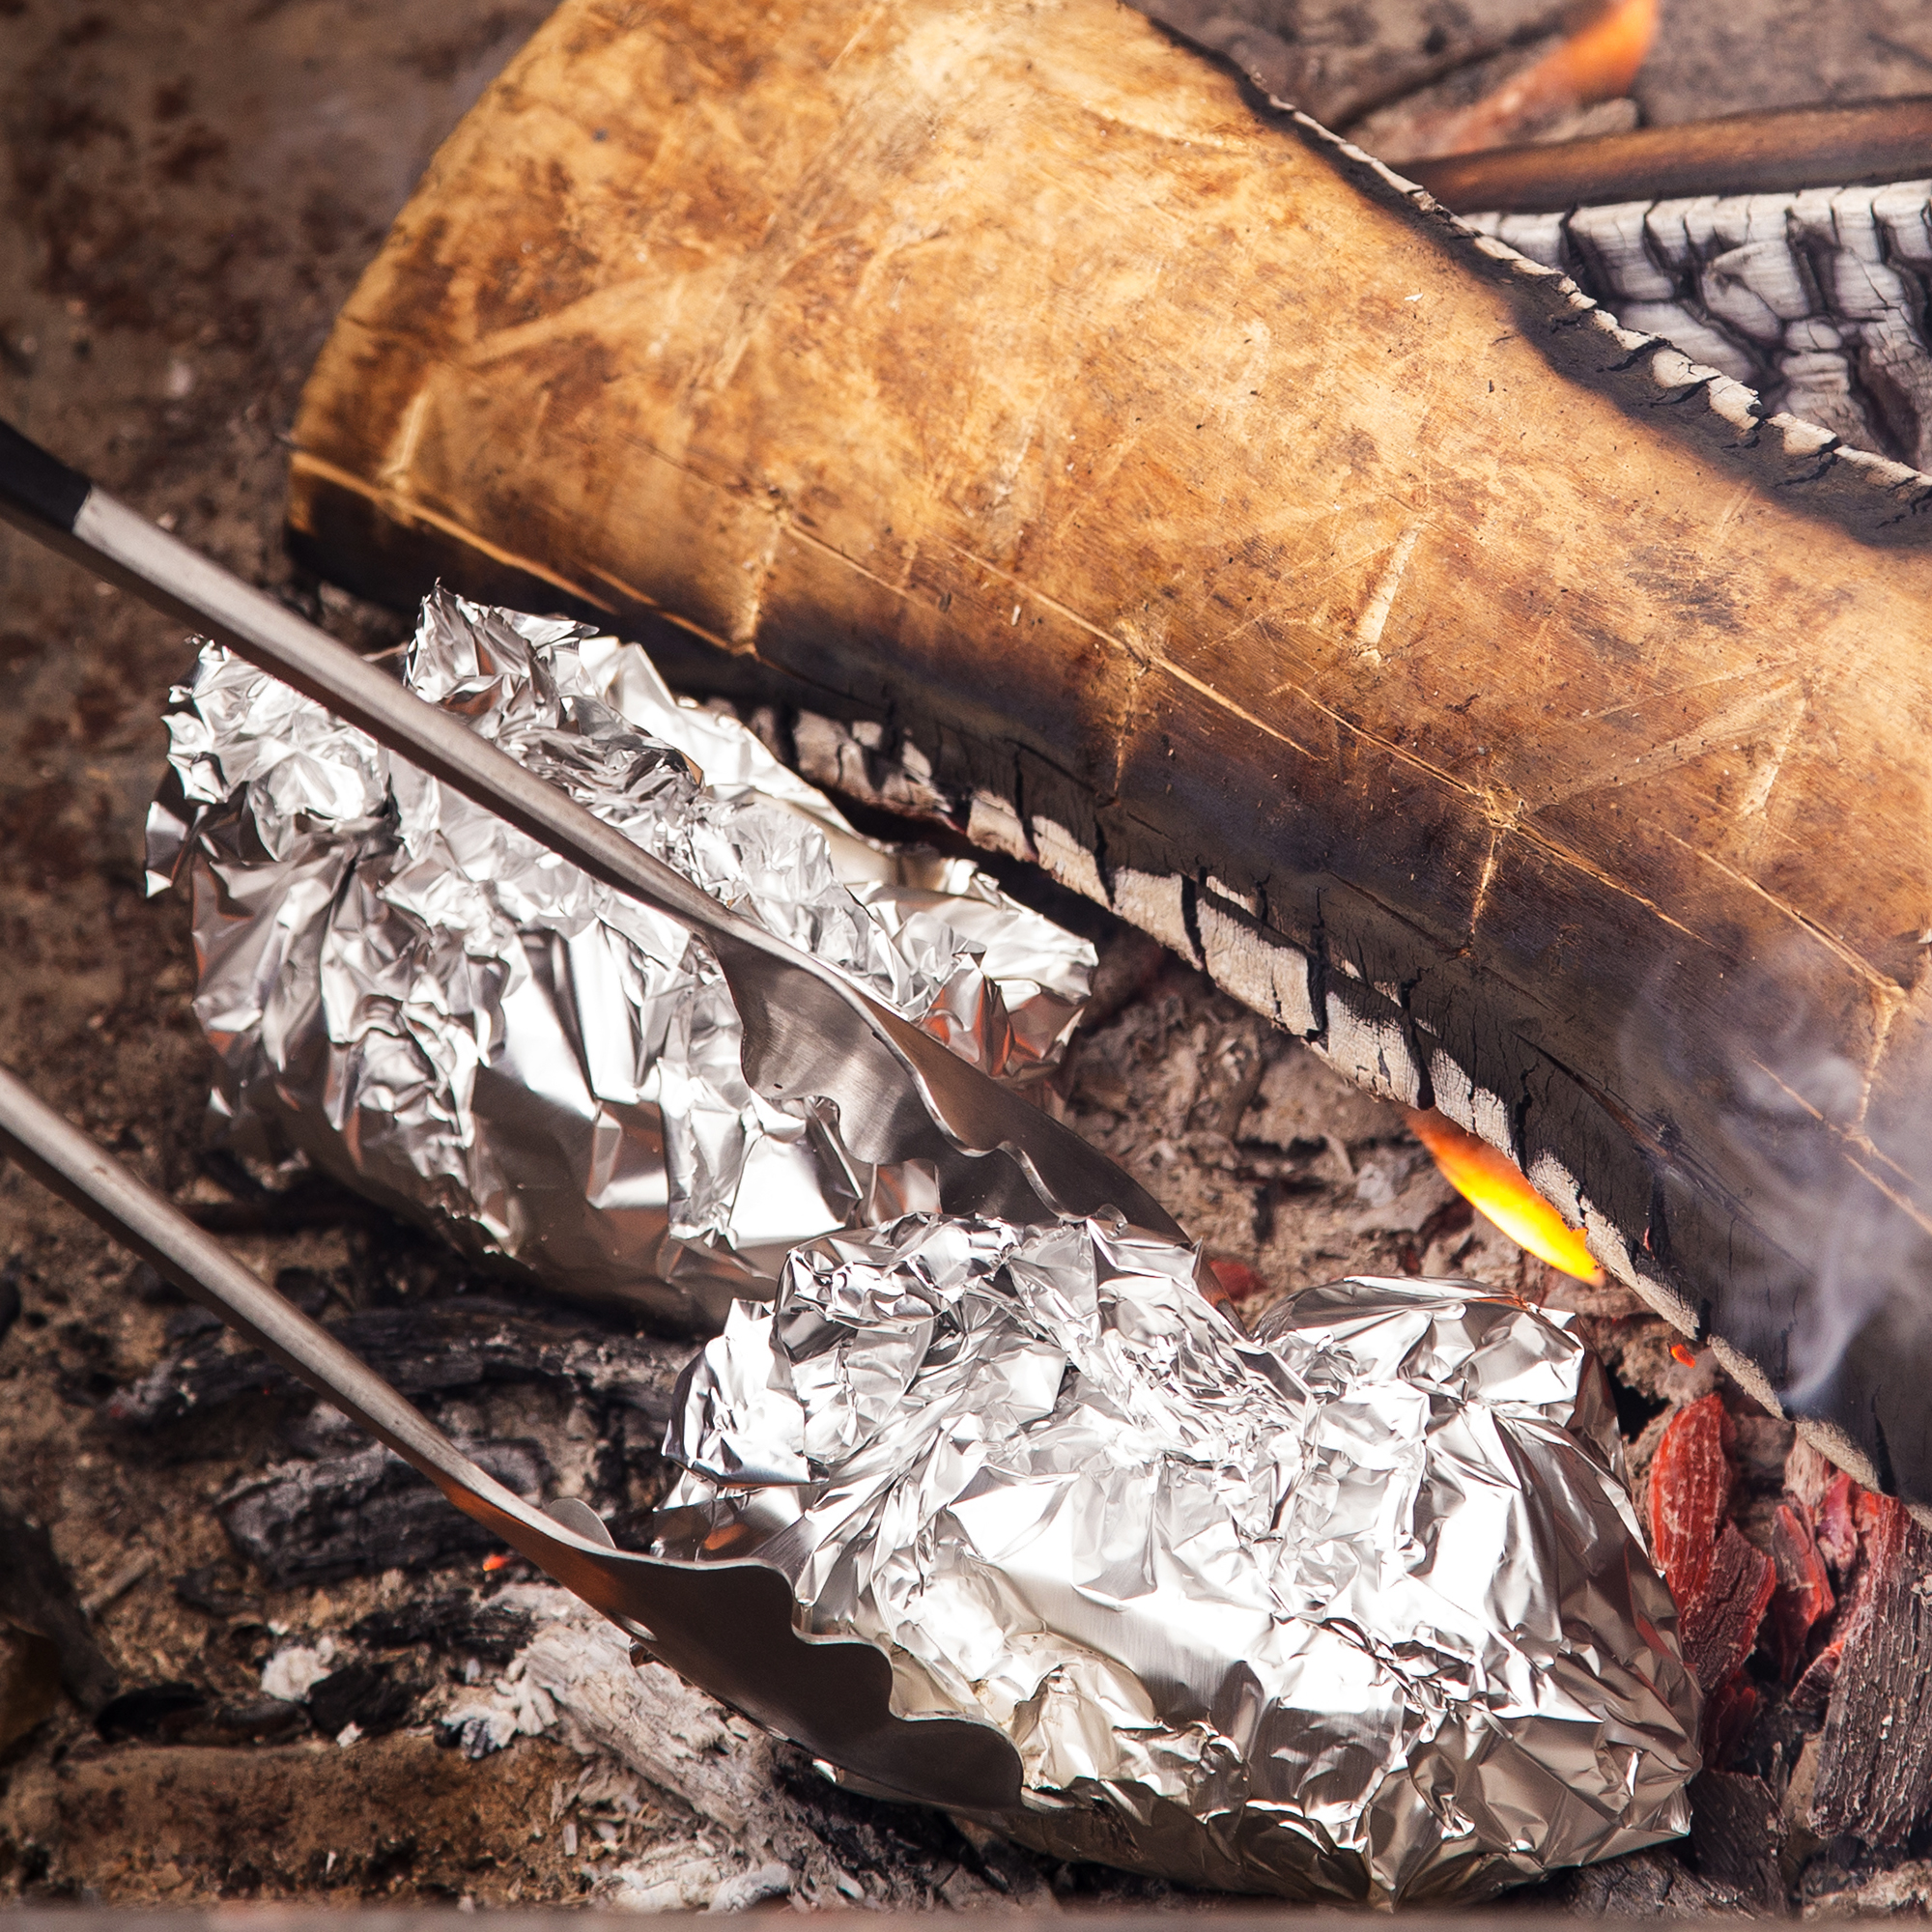 Two baked potatoes wrapped in tin foil being turned in a campfire